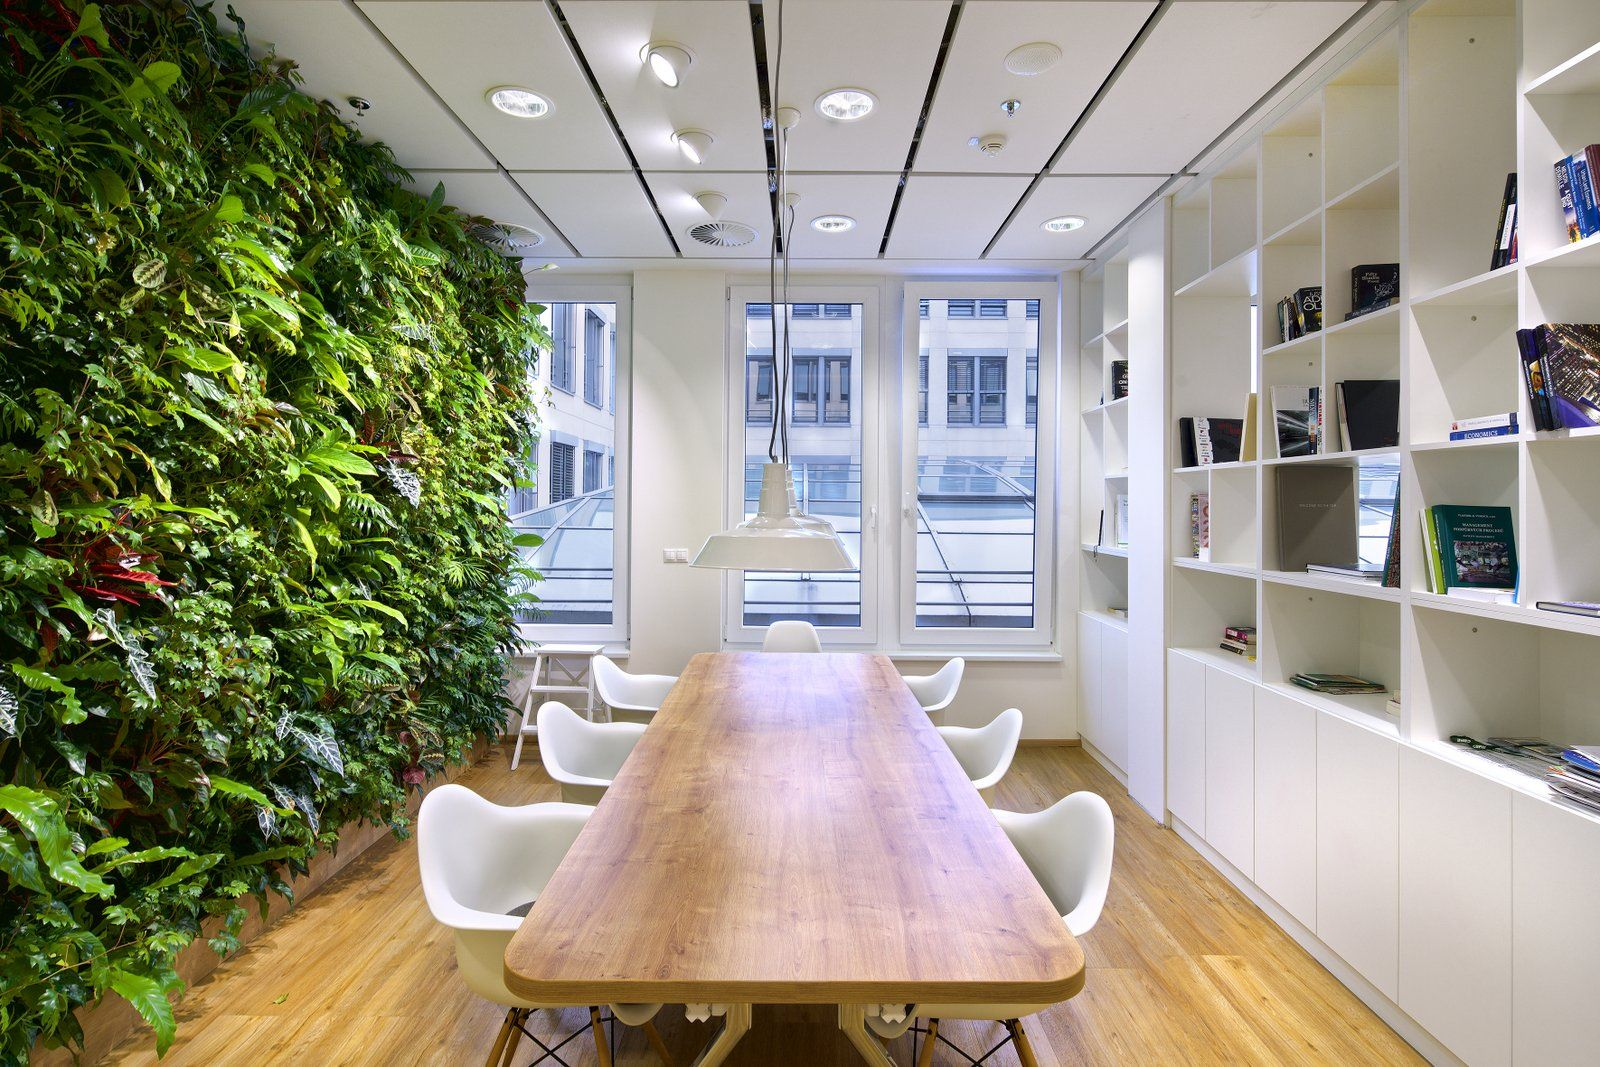 office greenery. Office Greenery. Tour: CBRE Offices \\u2013 Prague Greenery